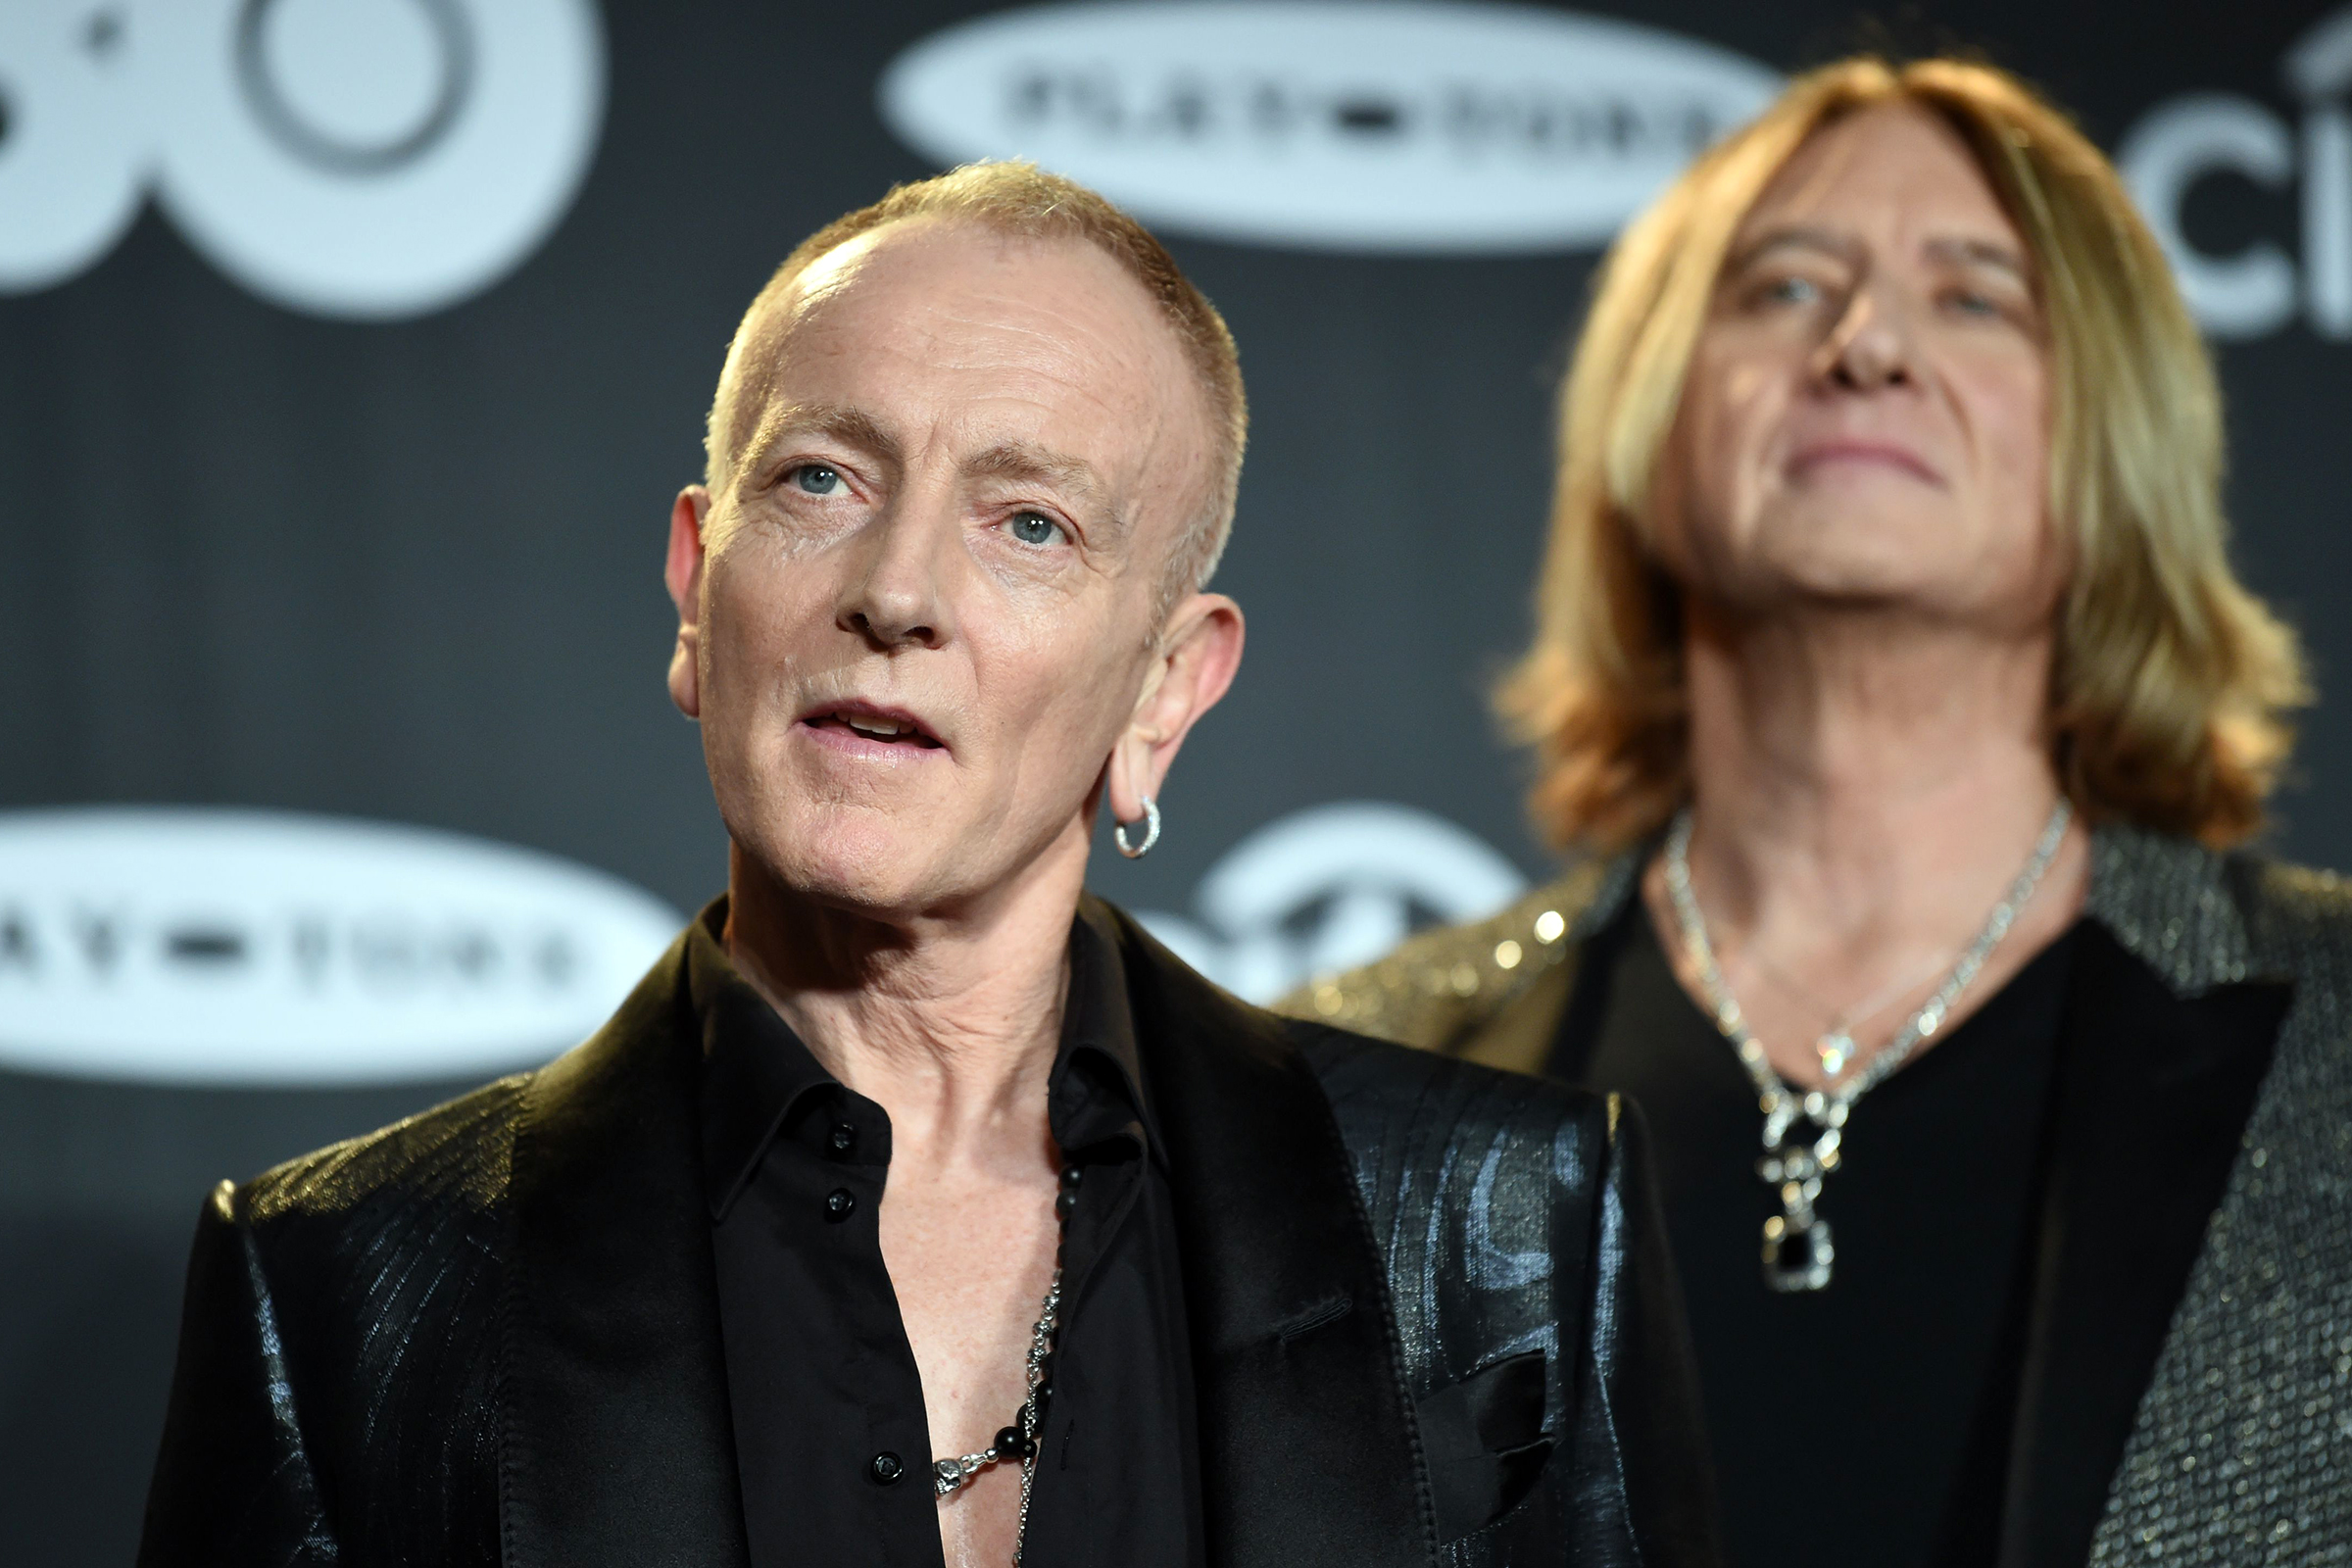 Def Leppard Are Still Putting in the Effort